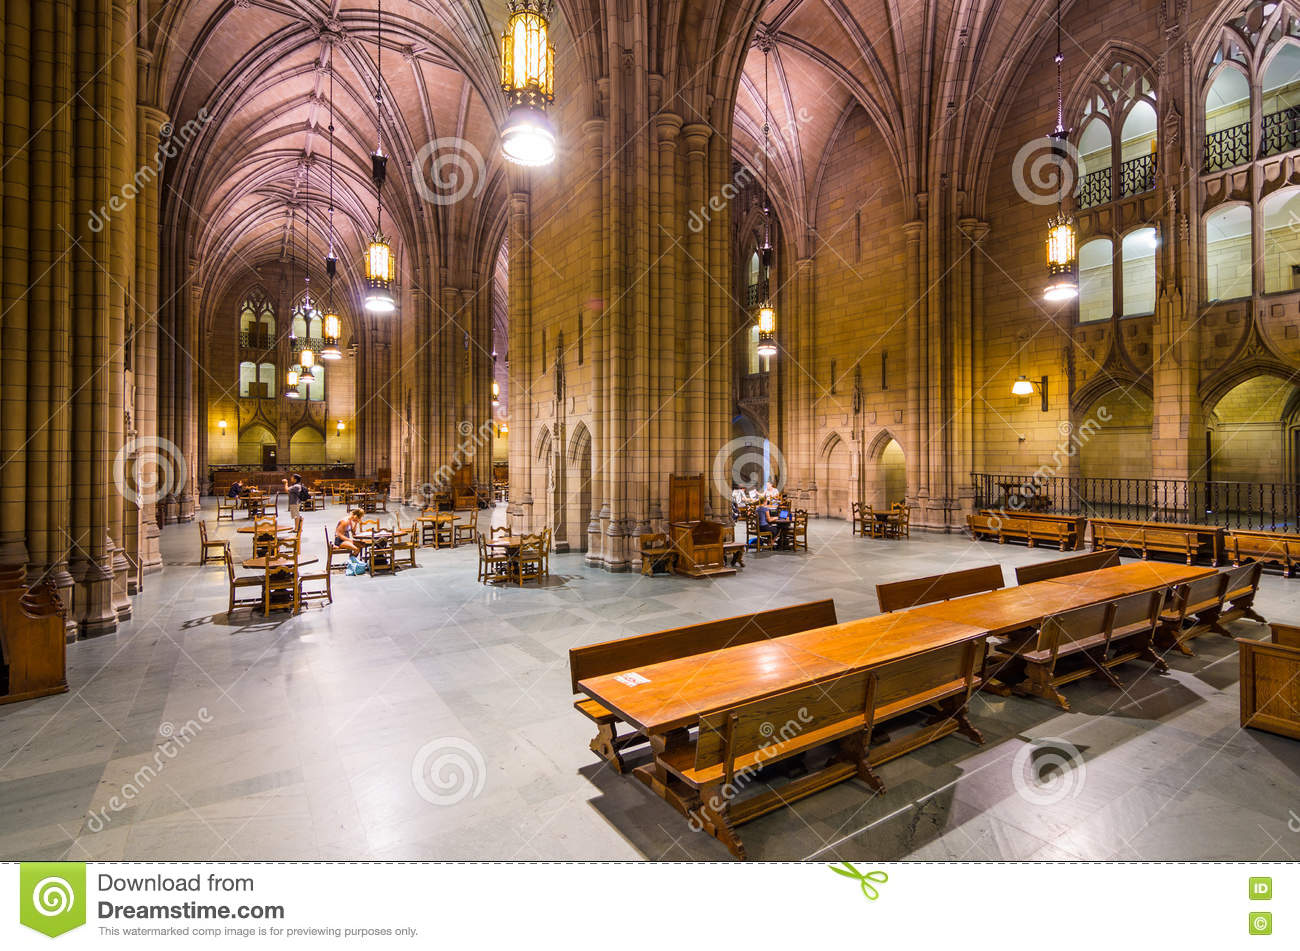 Cathedral Of Learning Editorial Image.